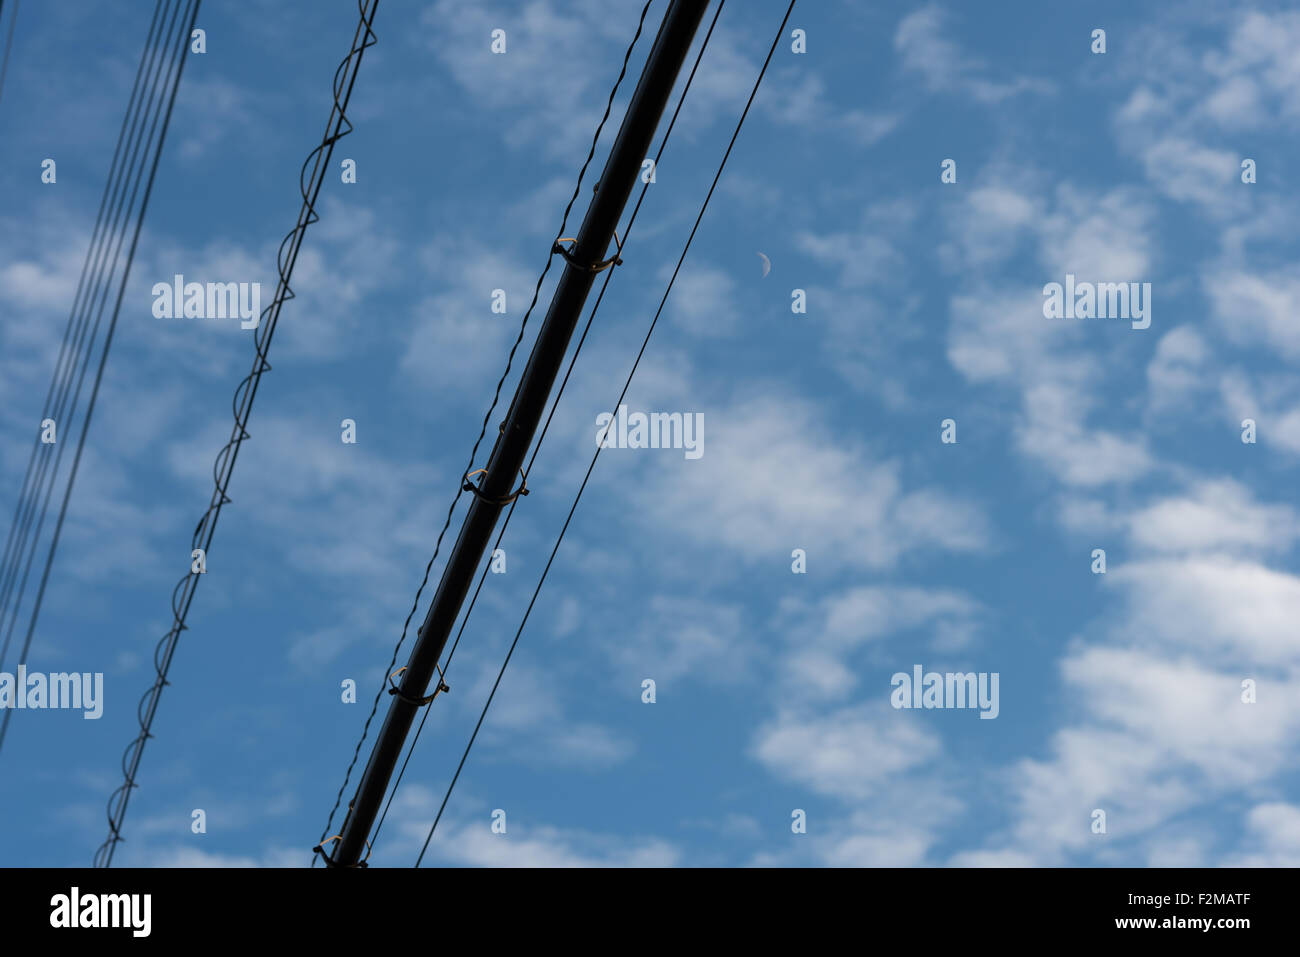 Black Power lines crossing a blue sky dappled with soft clouds and a cresent moon. - Stock Image